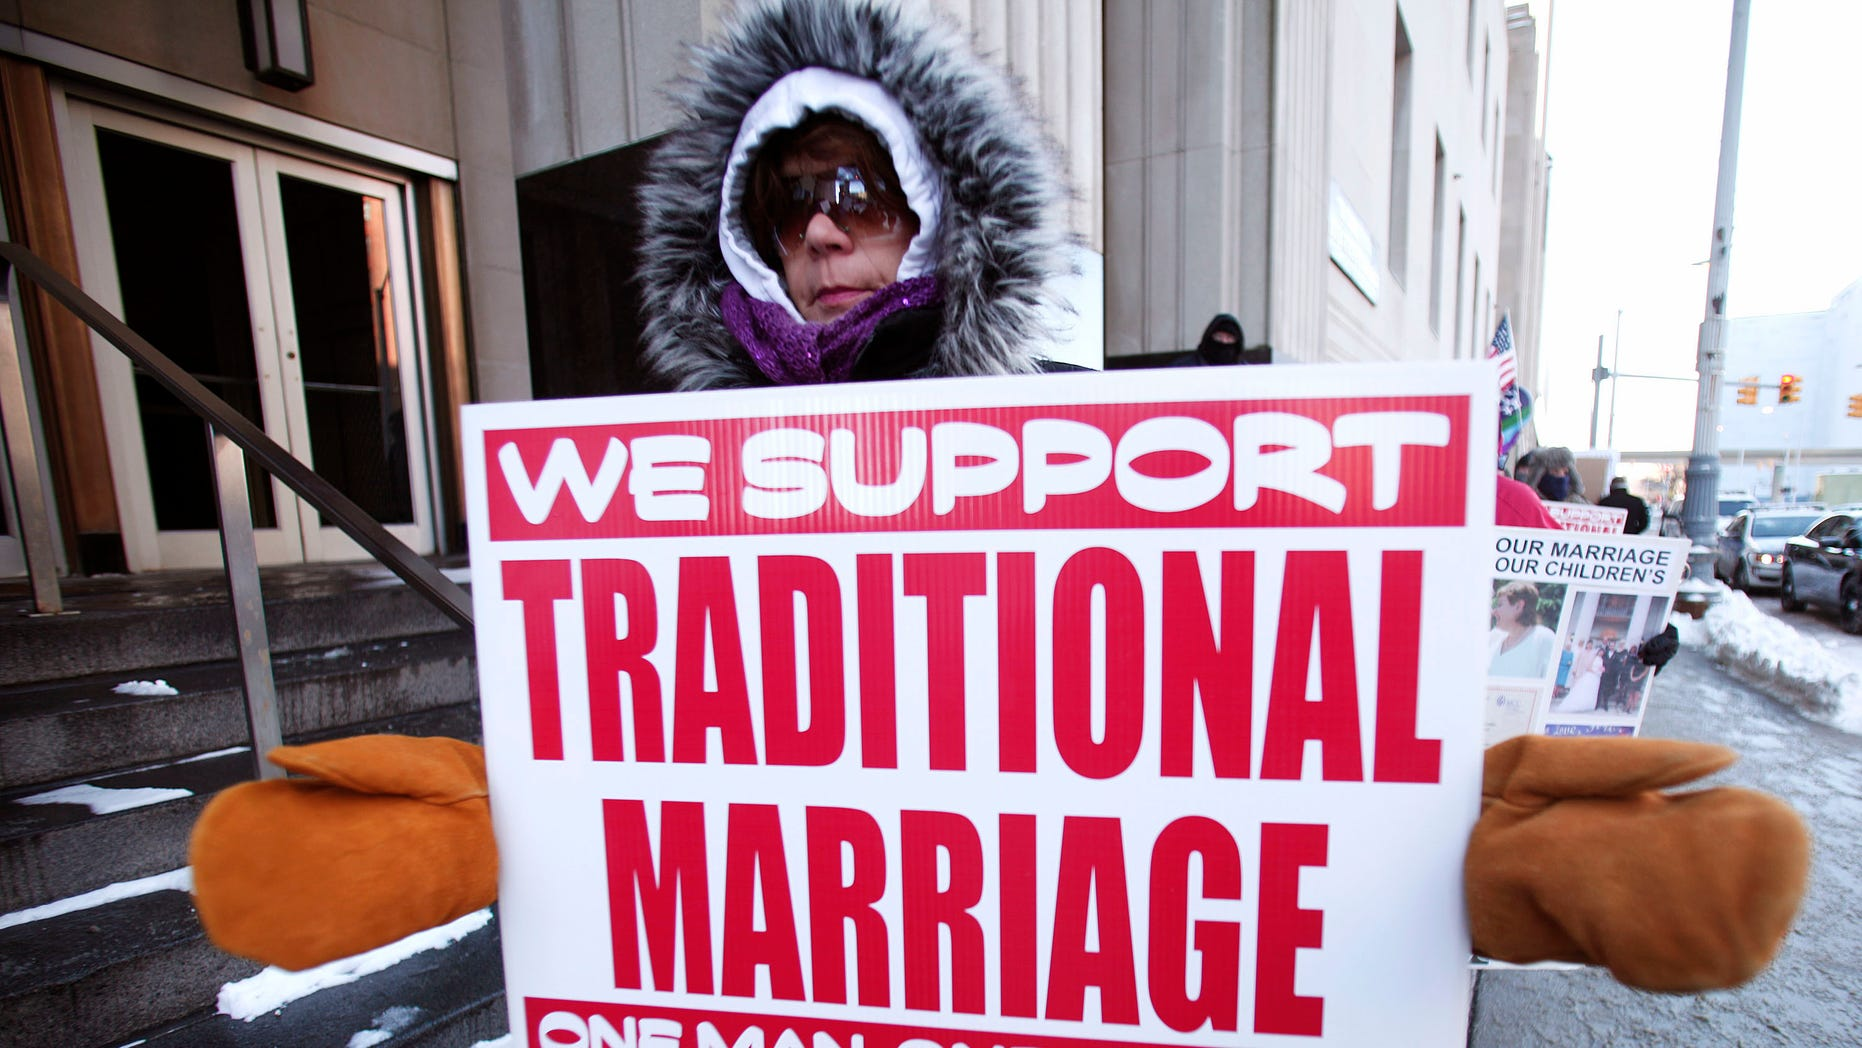 DETROIT, MI - MARCH 3: An advocate of traditional marriage protests in front of the U.S. Federal Courthouse March 3, 2014 in Detroit, Michigan. Plaintiffs Jayne Rowse and April DeBoer, a gay couple, have filed suit in Federal Court in an attempt to have Michigan's ban on gay marriage and gay adoption overturned. Current Michigan law defines marriage as the union between one man and one woman. (Photo by Bill Pugliano/Getty Images)